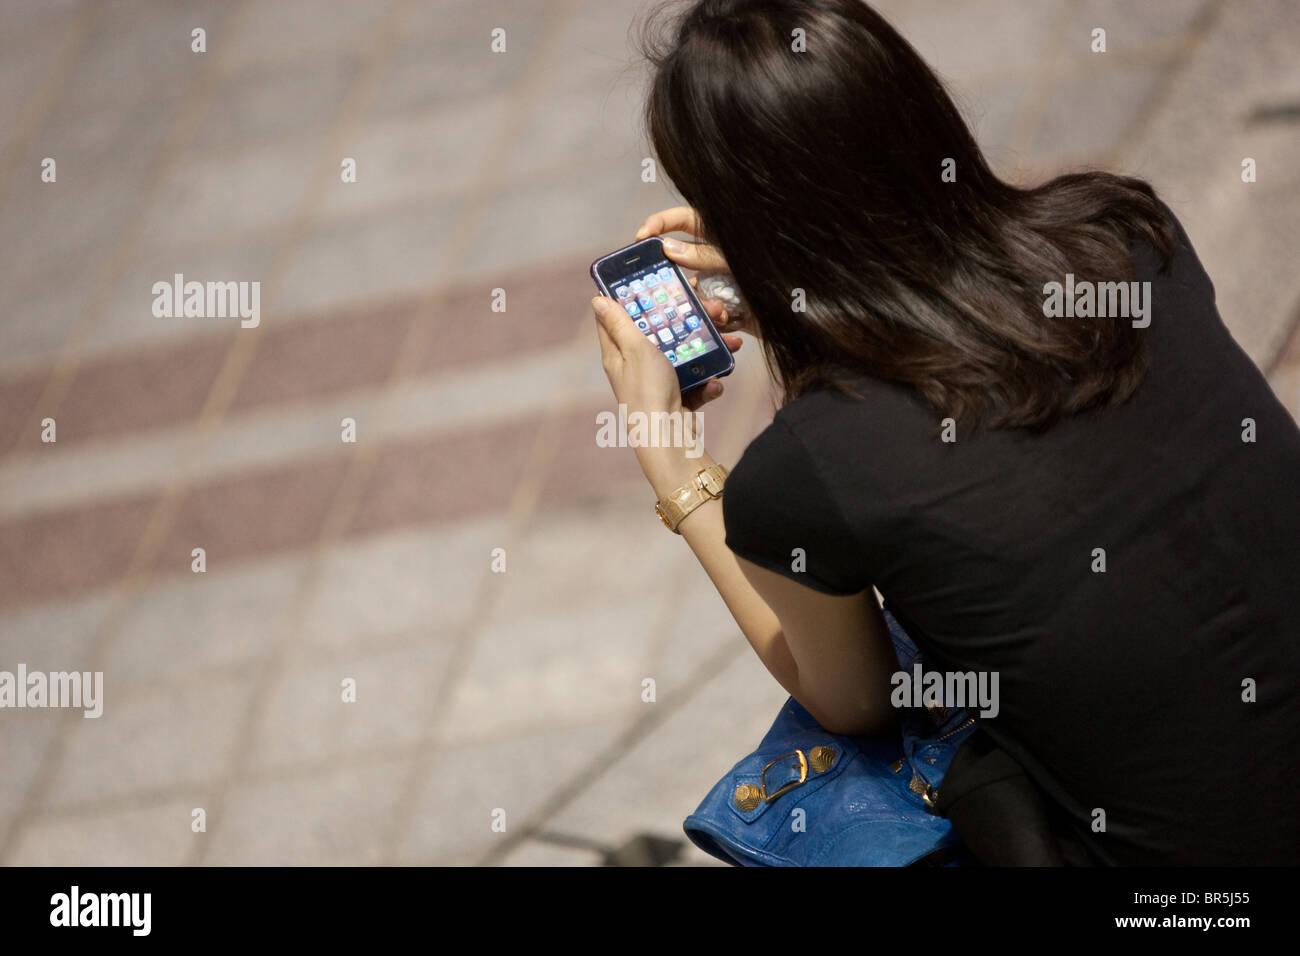 Playing with Apple Mac's iPhone outside the Shinsegae store in Namdaemun district, in Seoul, South Korea. - Stock Image